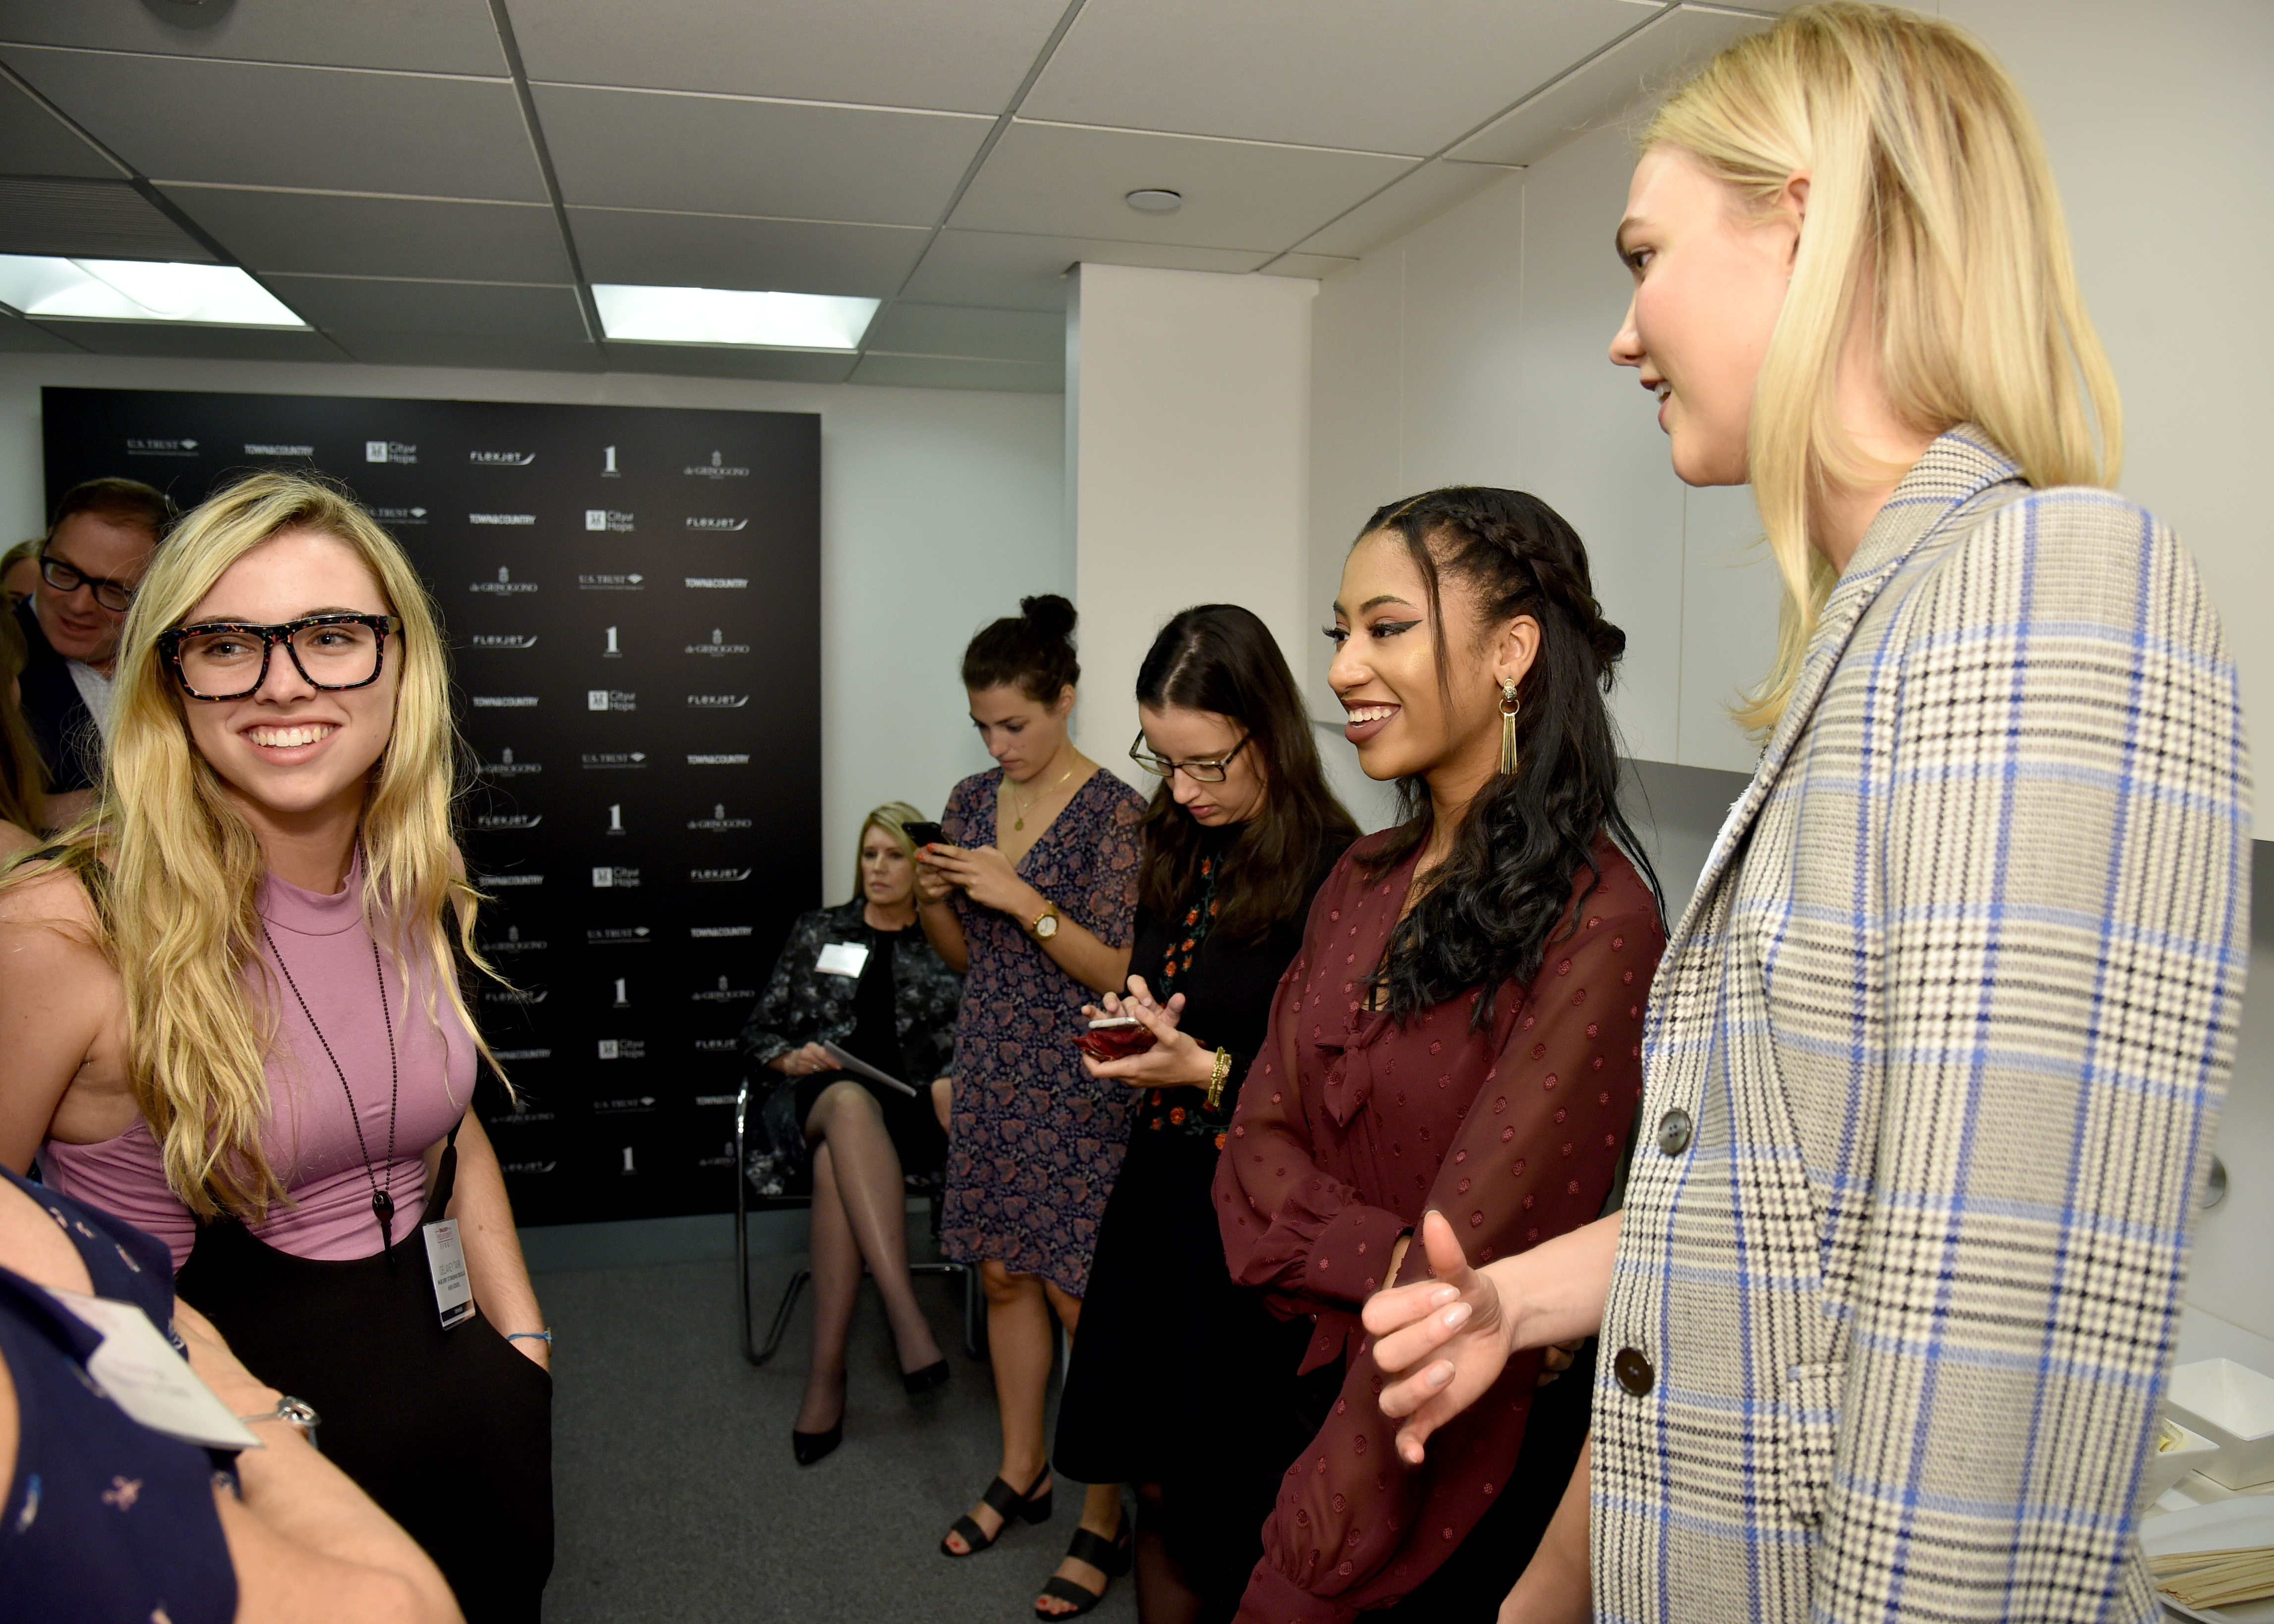 Marjory Stoneman Douglas High School Student Delaney Tarr, Kode With Klossy Scholar Alexis Williams and Model and Kode With Klossy Founder Karlie Kloss attend the Fifth Annual Town & Country Philanthropy Summit on May 9, 2018 in New York City.